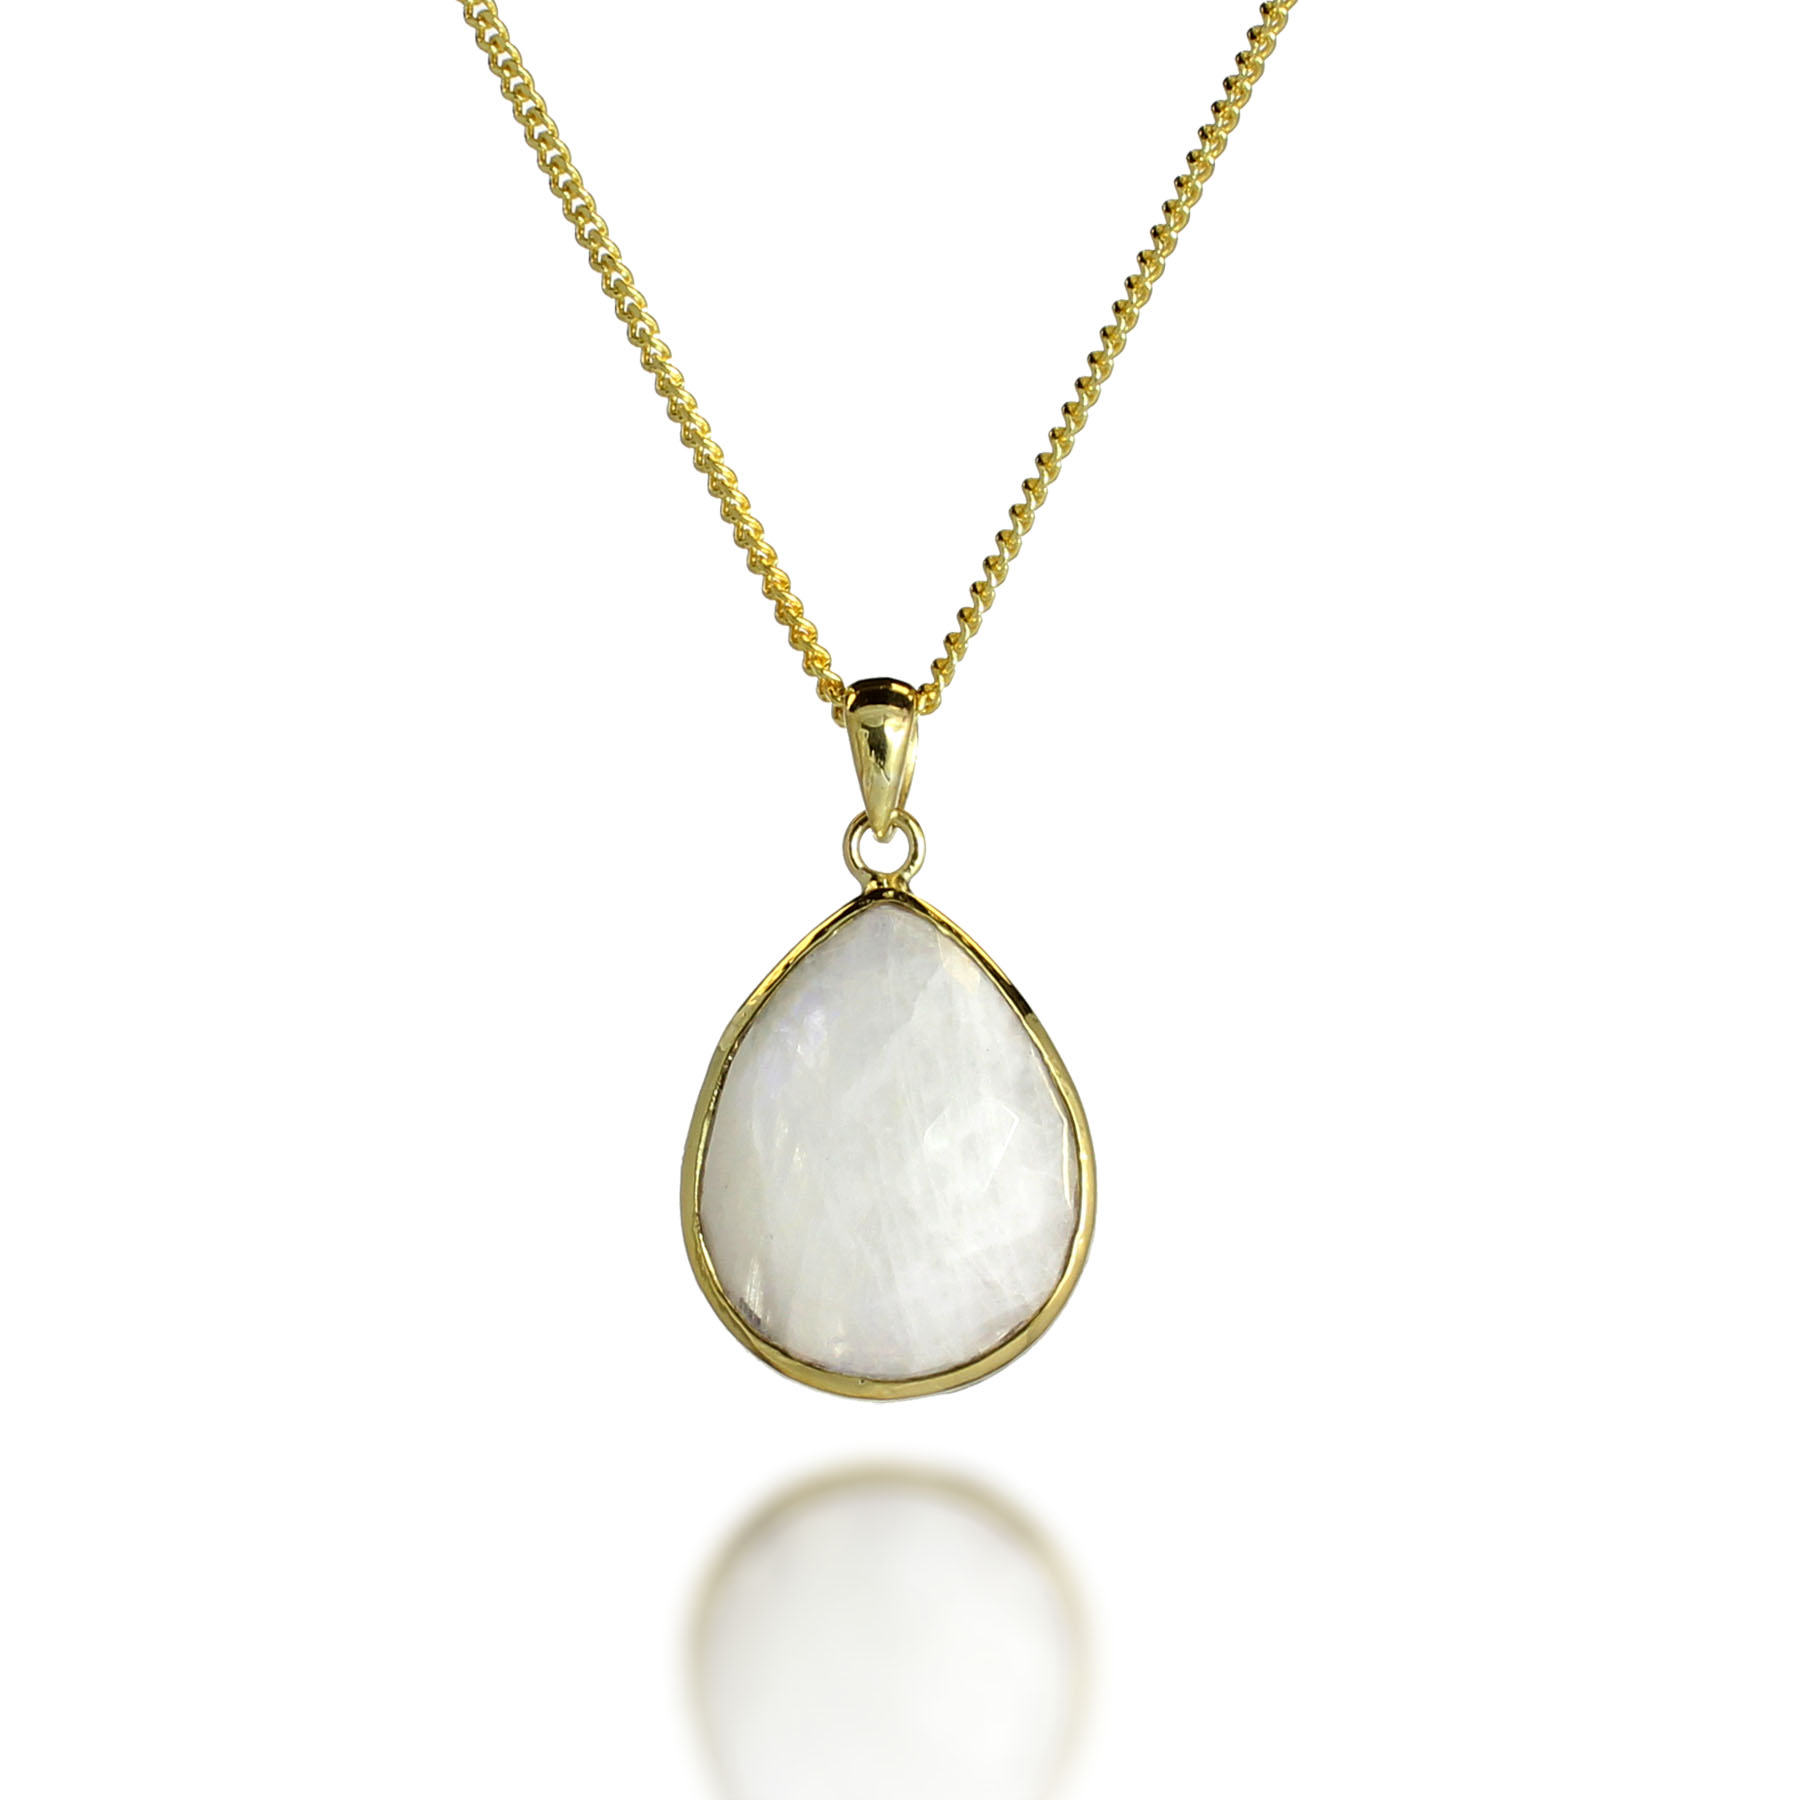 18K Gold-Plated Faceted Teardrop Rainbow Moonstone Gemstone Pendant Necklace, 17-19 inches